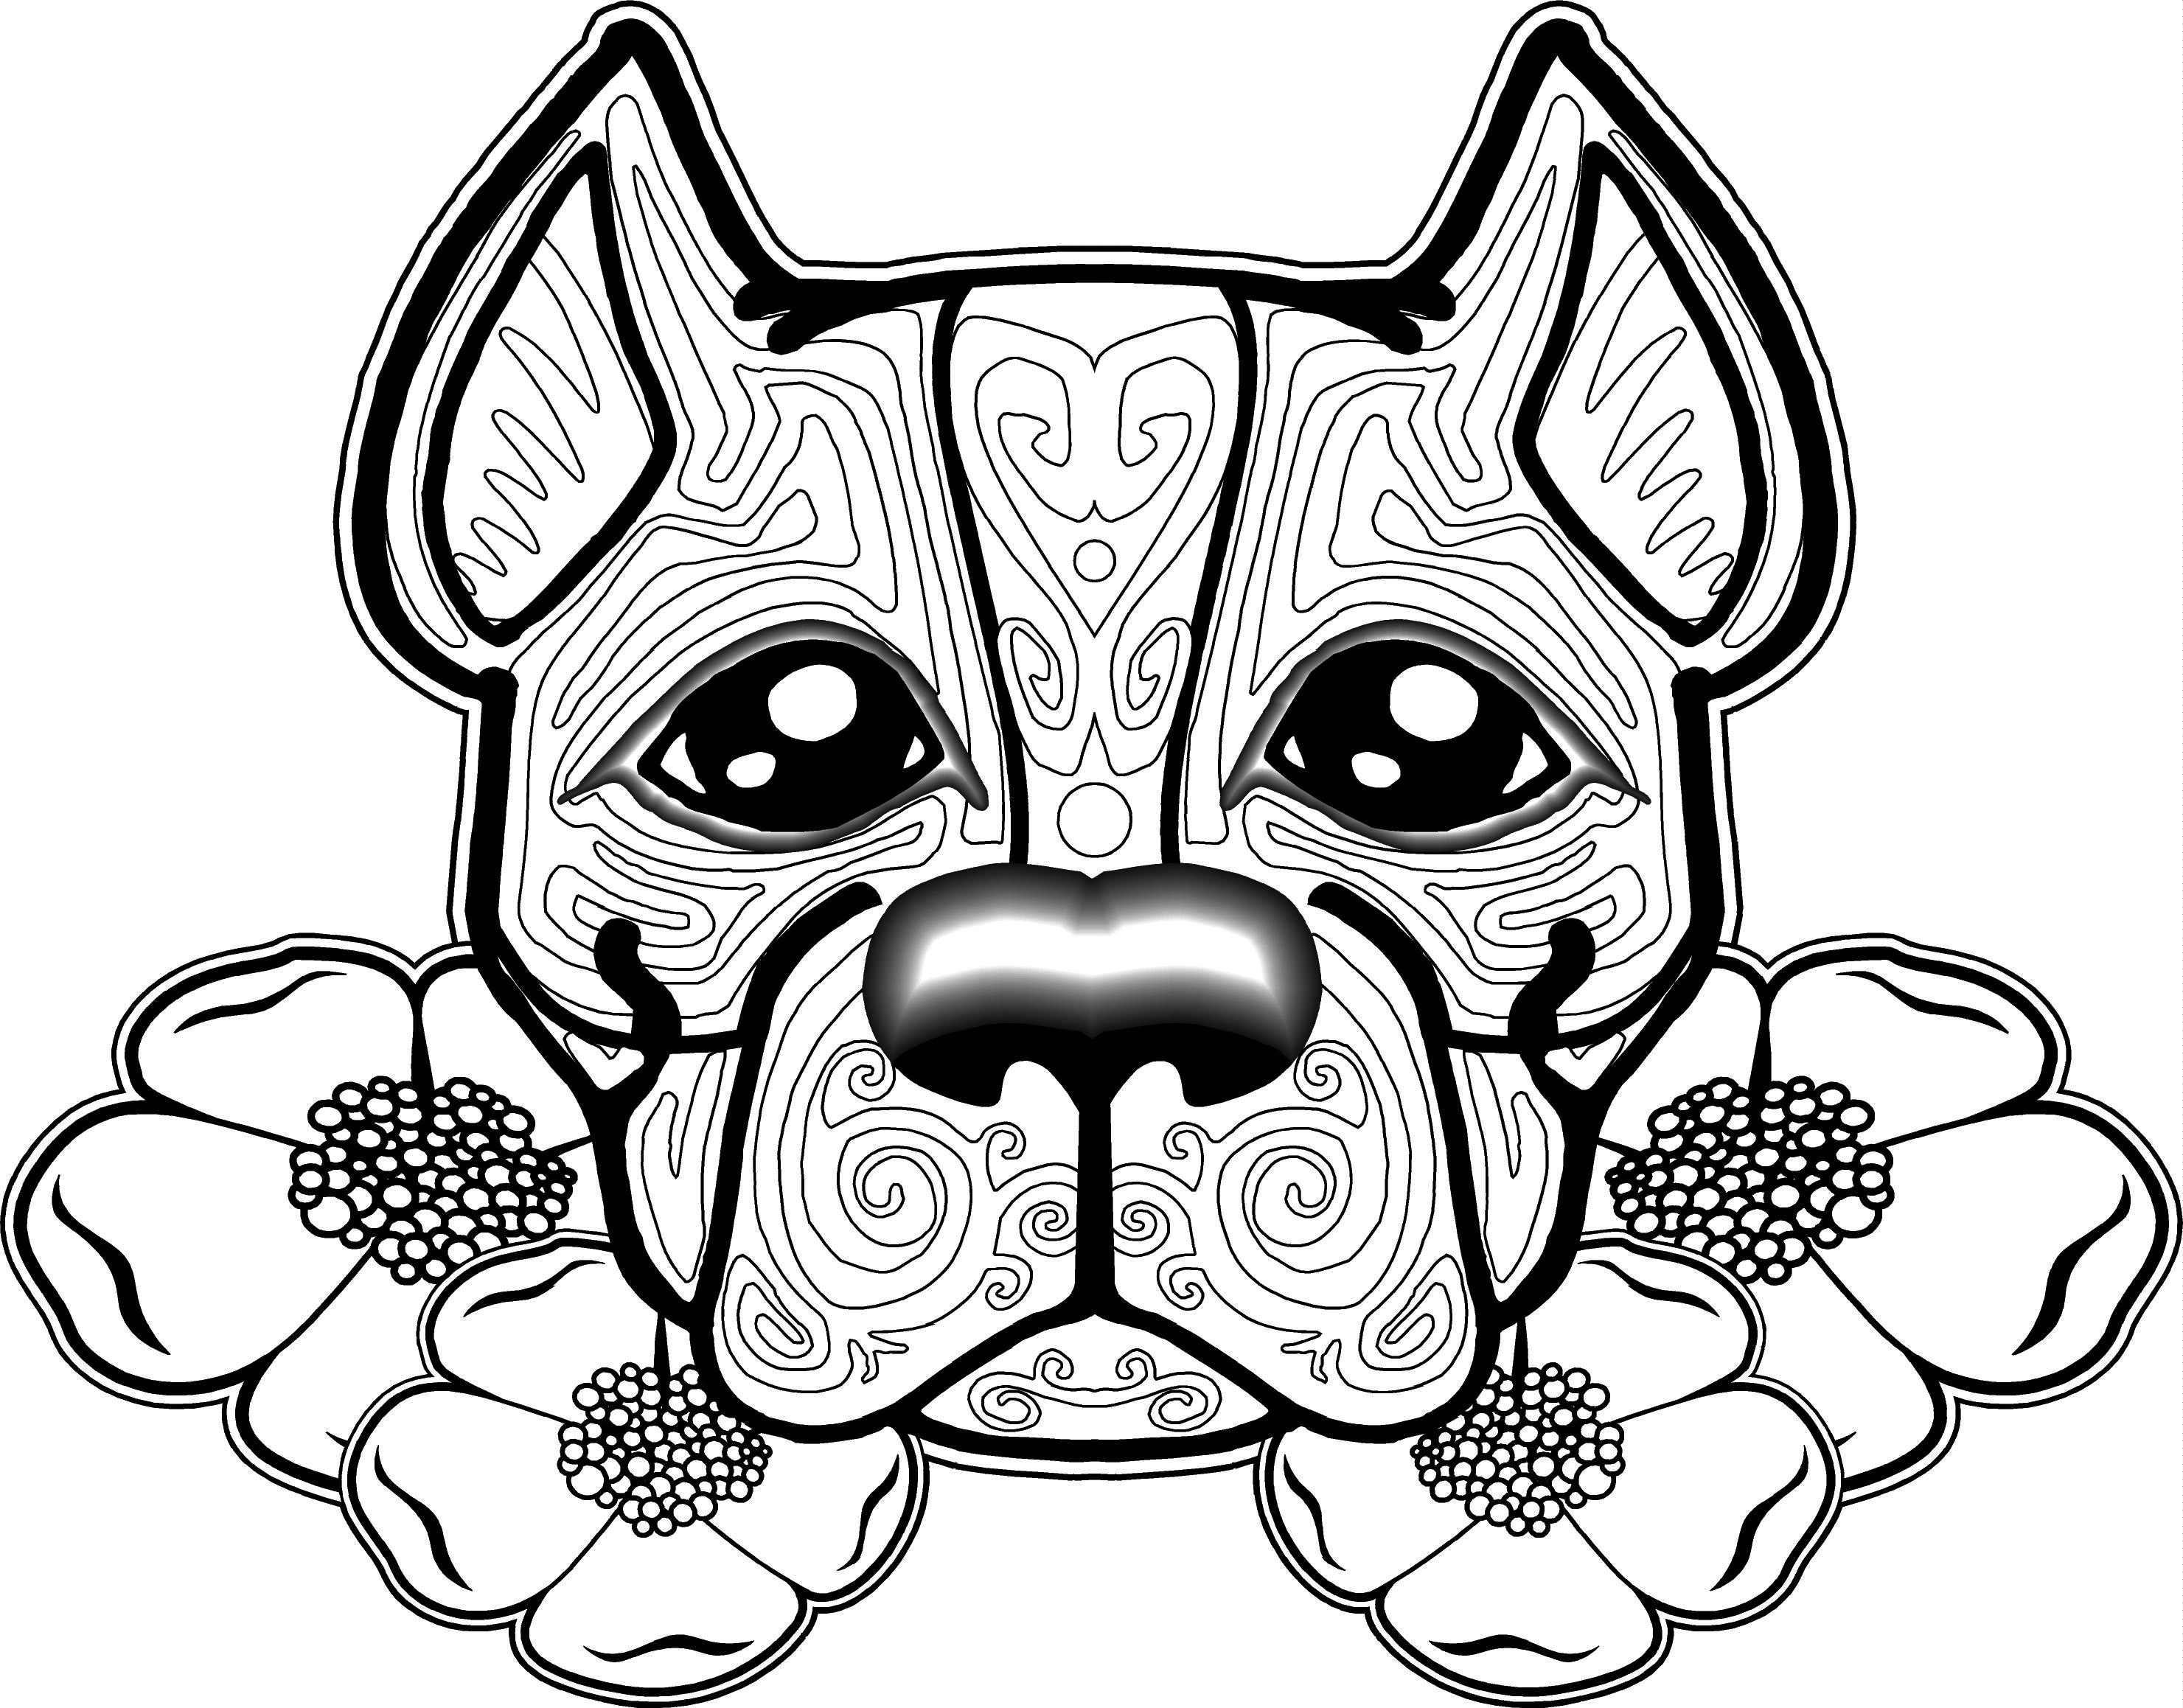 2961x2317 Cat And Dog Coloring Pages Printable Image